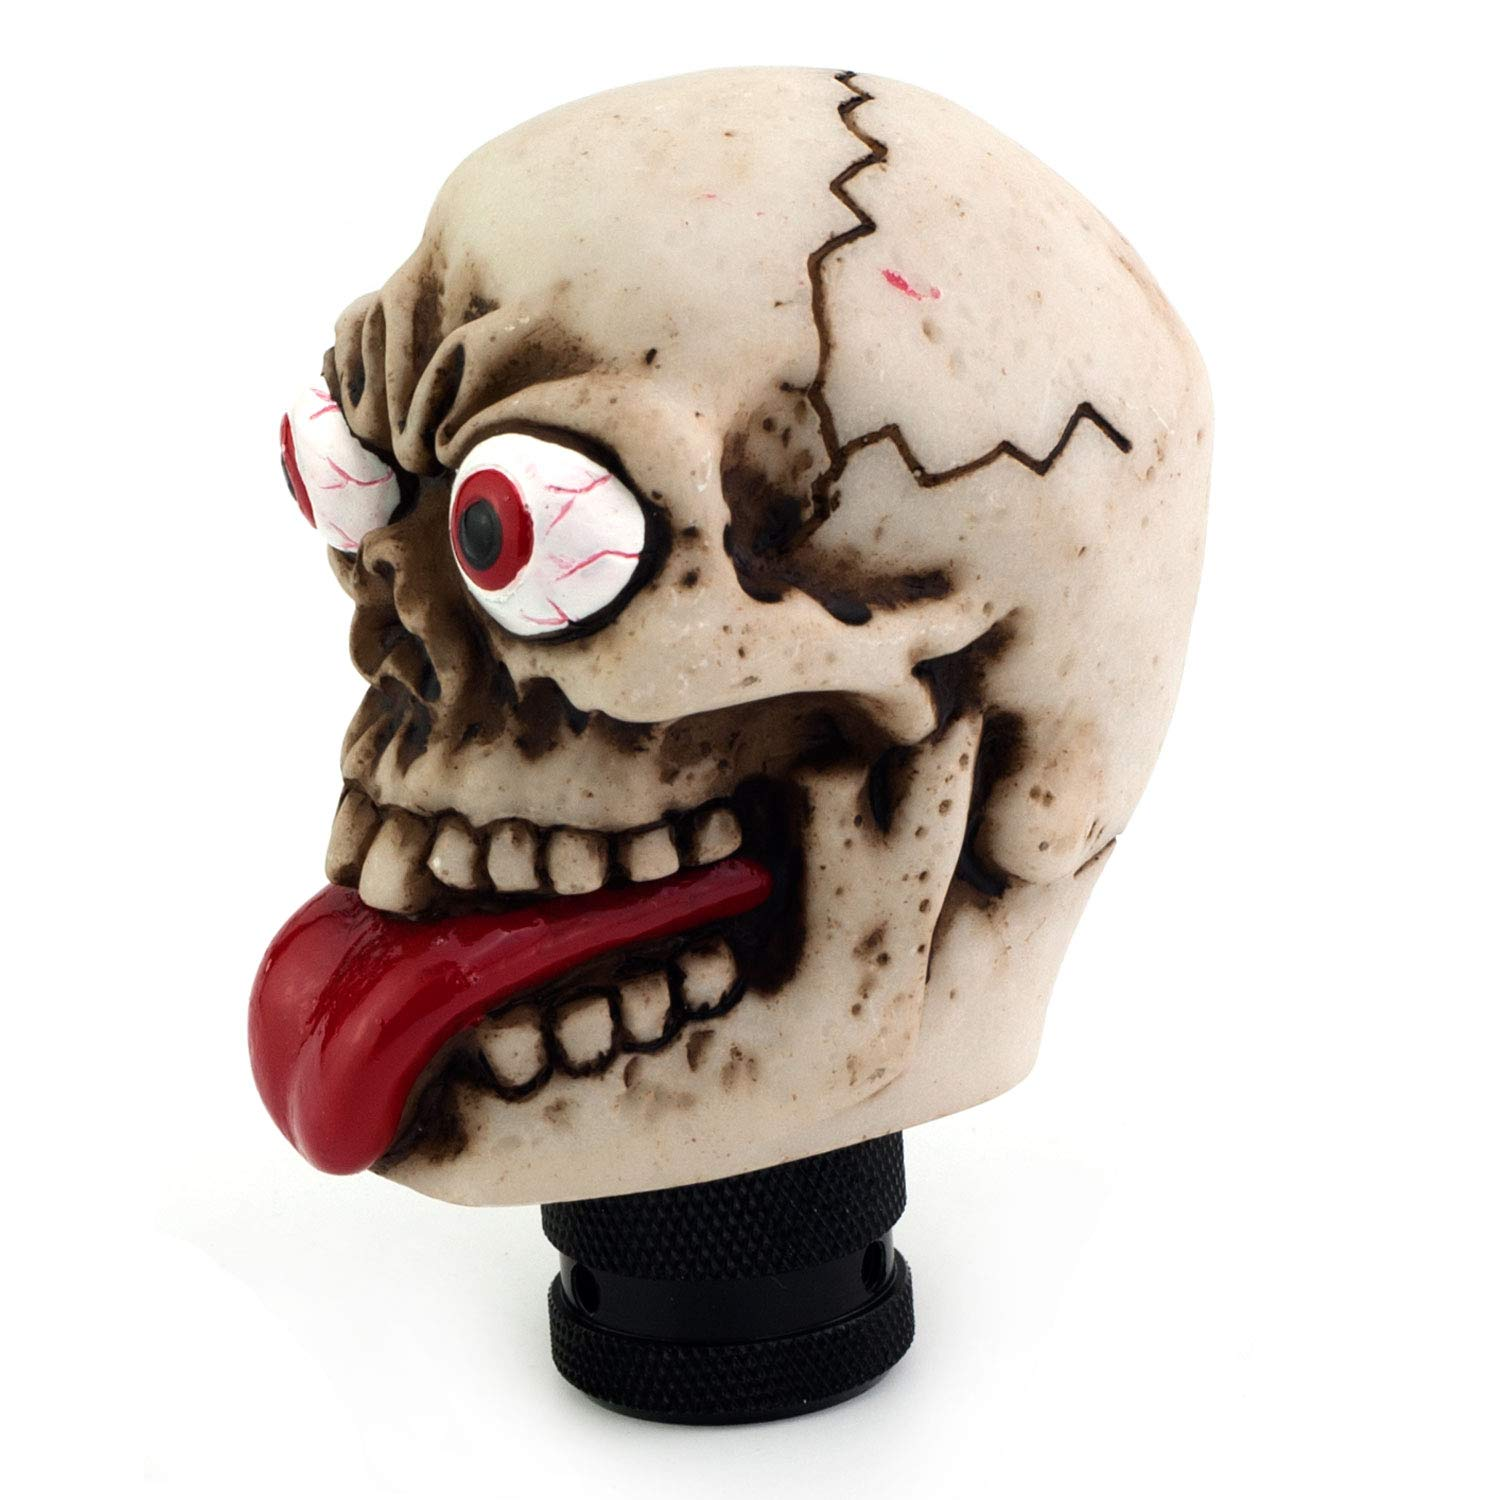 Thruifo Skull Gear Car Shift Knob Funny Grimace Style MT Stick Shifter Head Fit Most Manual Automatic Vehicles